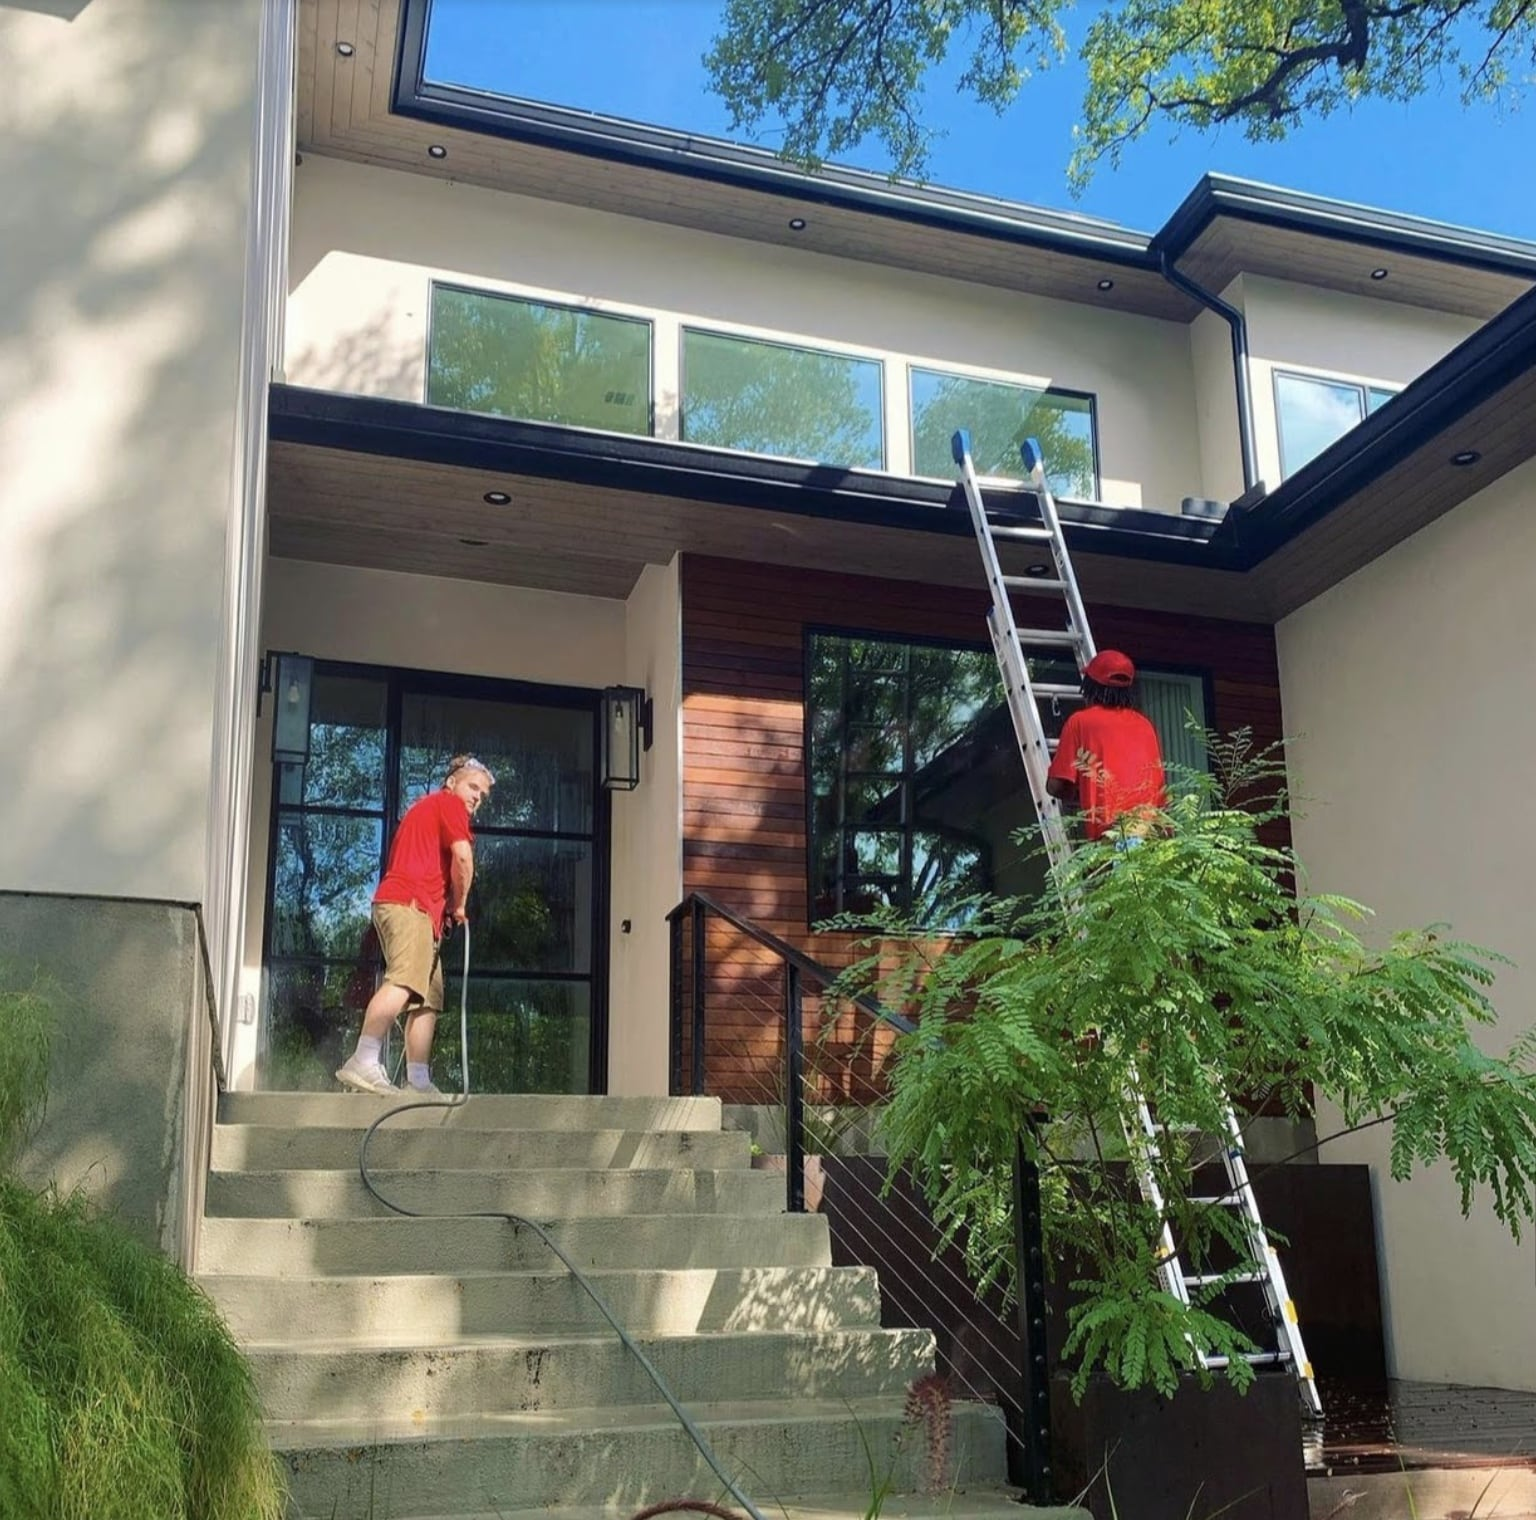 window and screen cleaning services for homes and businesses